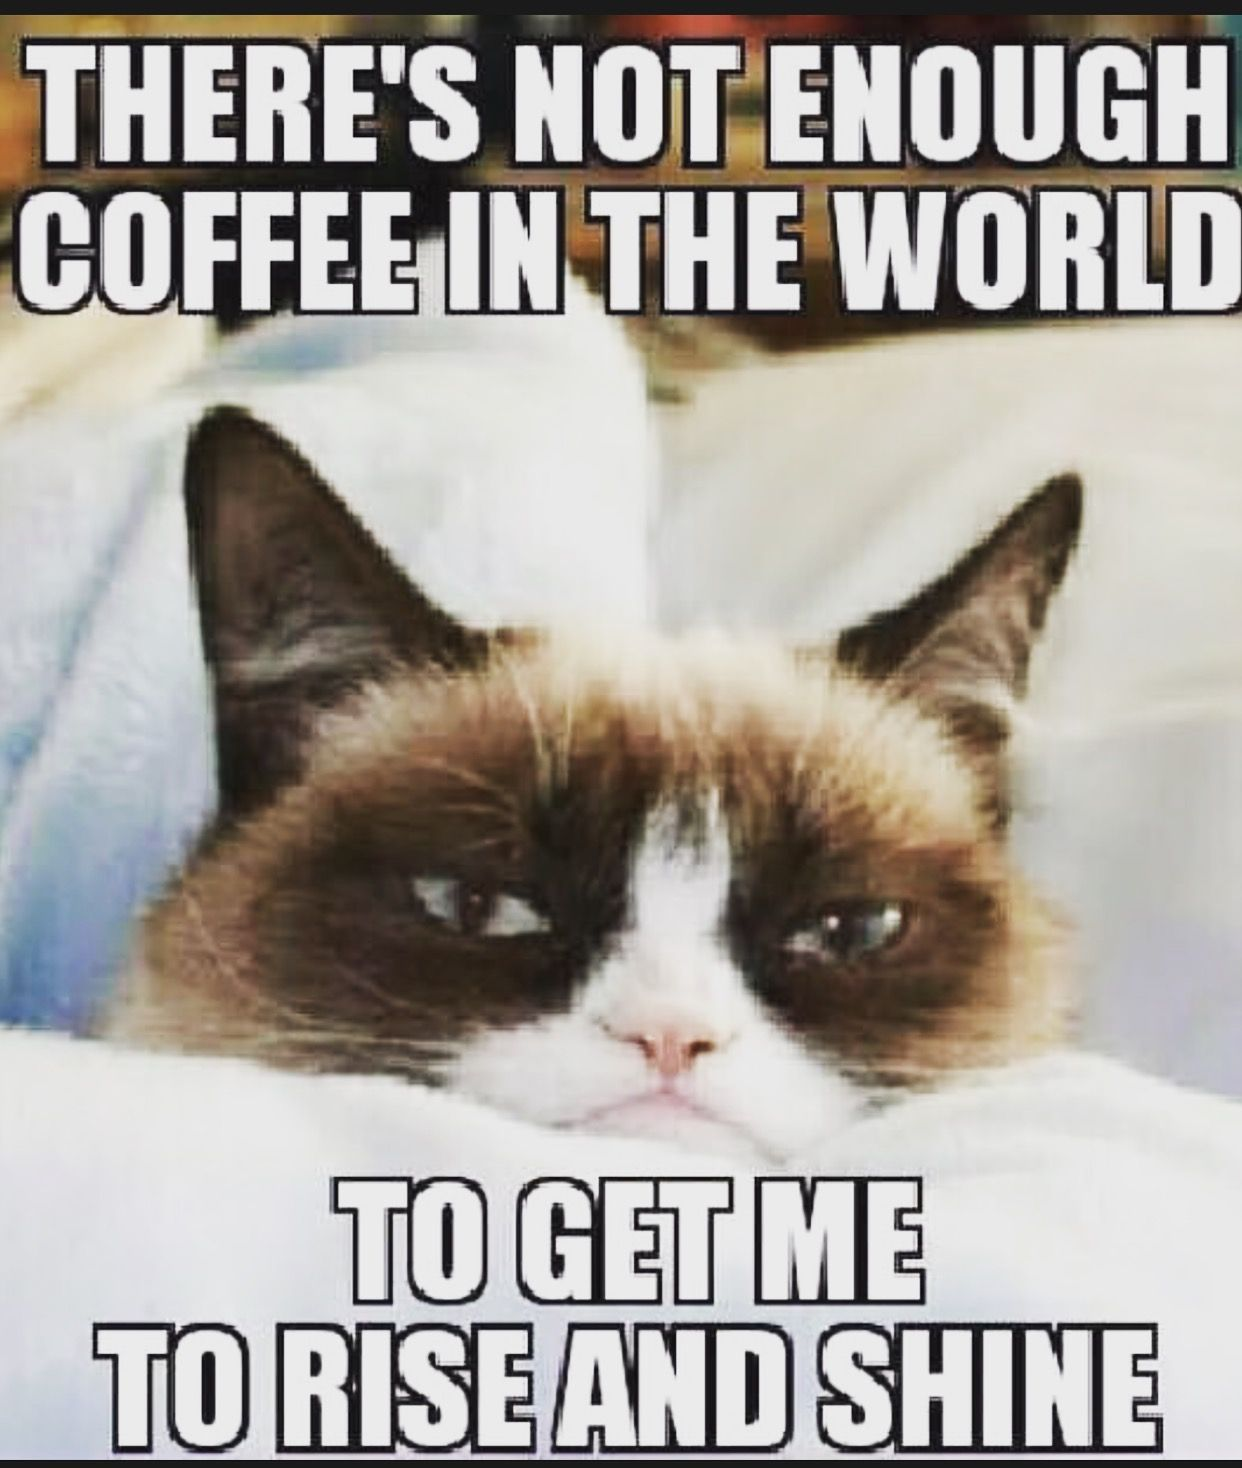 Pin by CatandKittenLand on Catsandkittens   Funny pictures, Funny ... #notEnoughCoffee